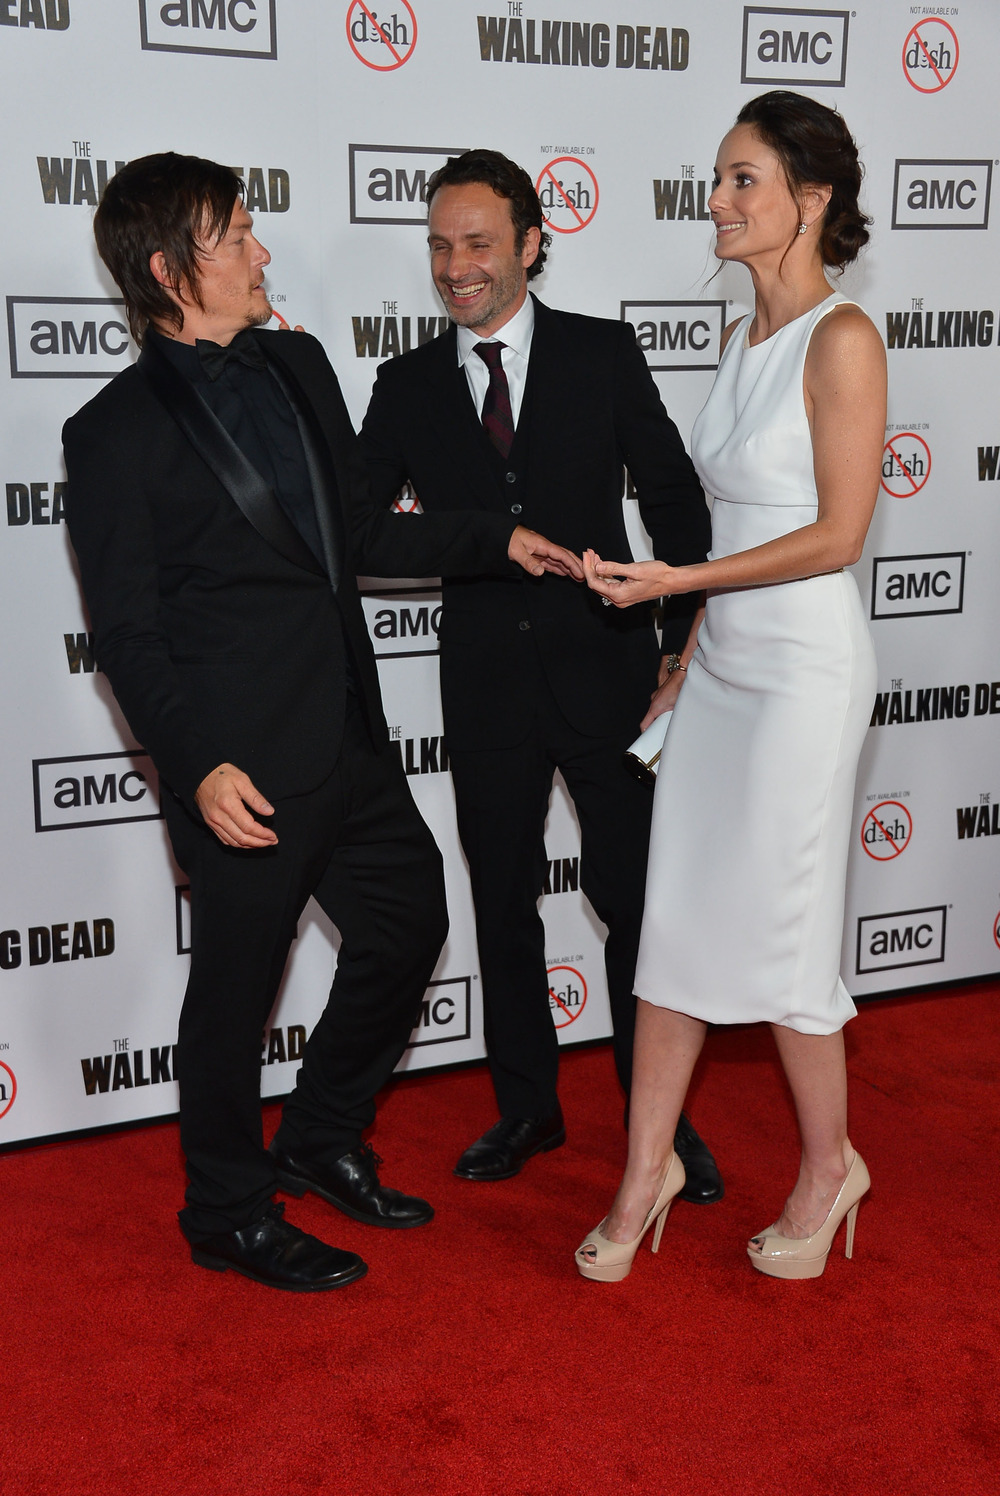 Norman Reedus and Andrew Lincoln: Inside Television's Best Bromance! (PHOTOS)